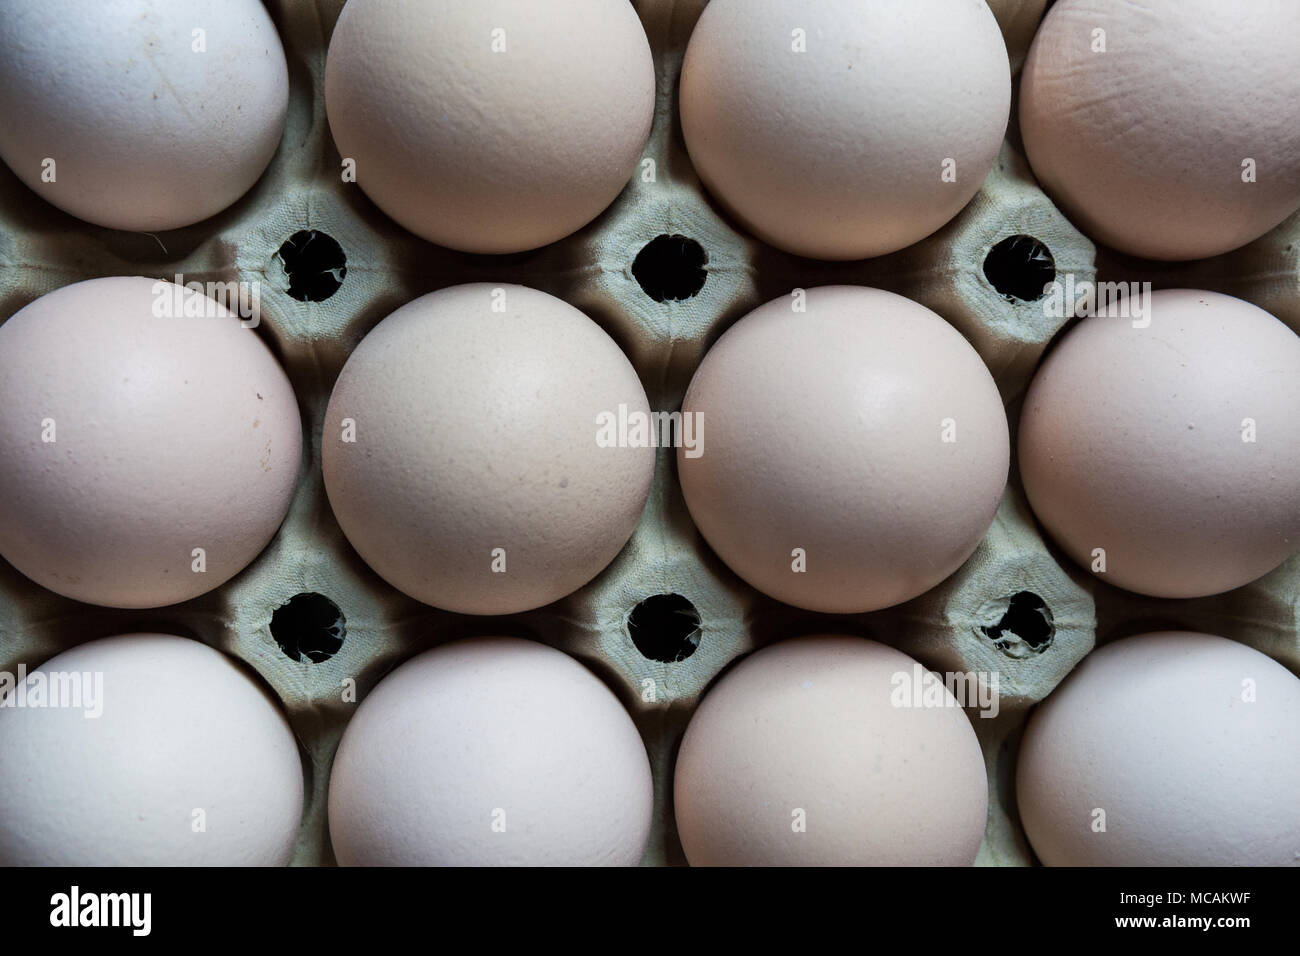 Eggs in carton cell - Stock Image